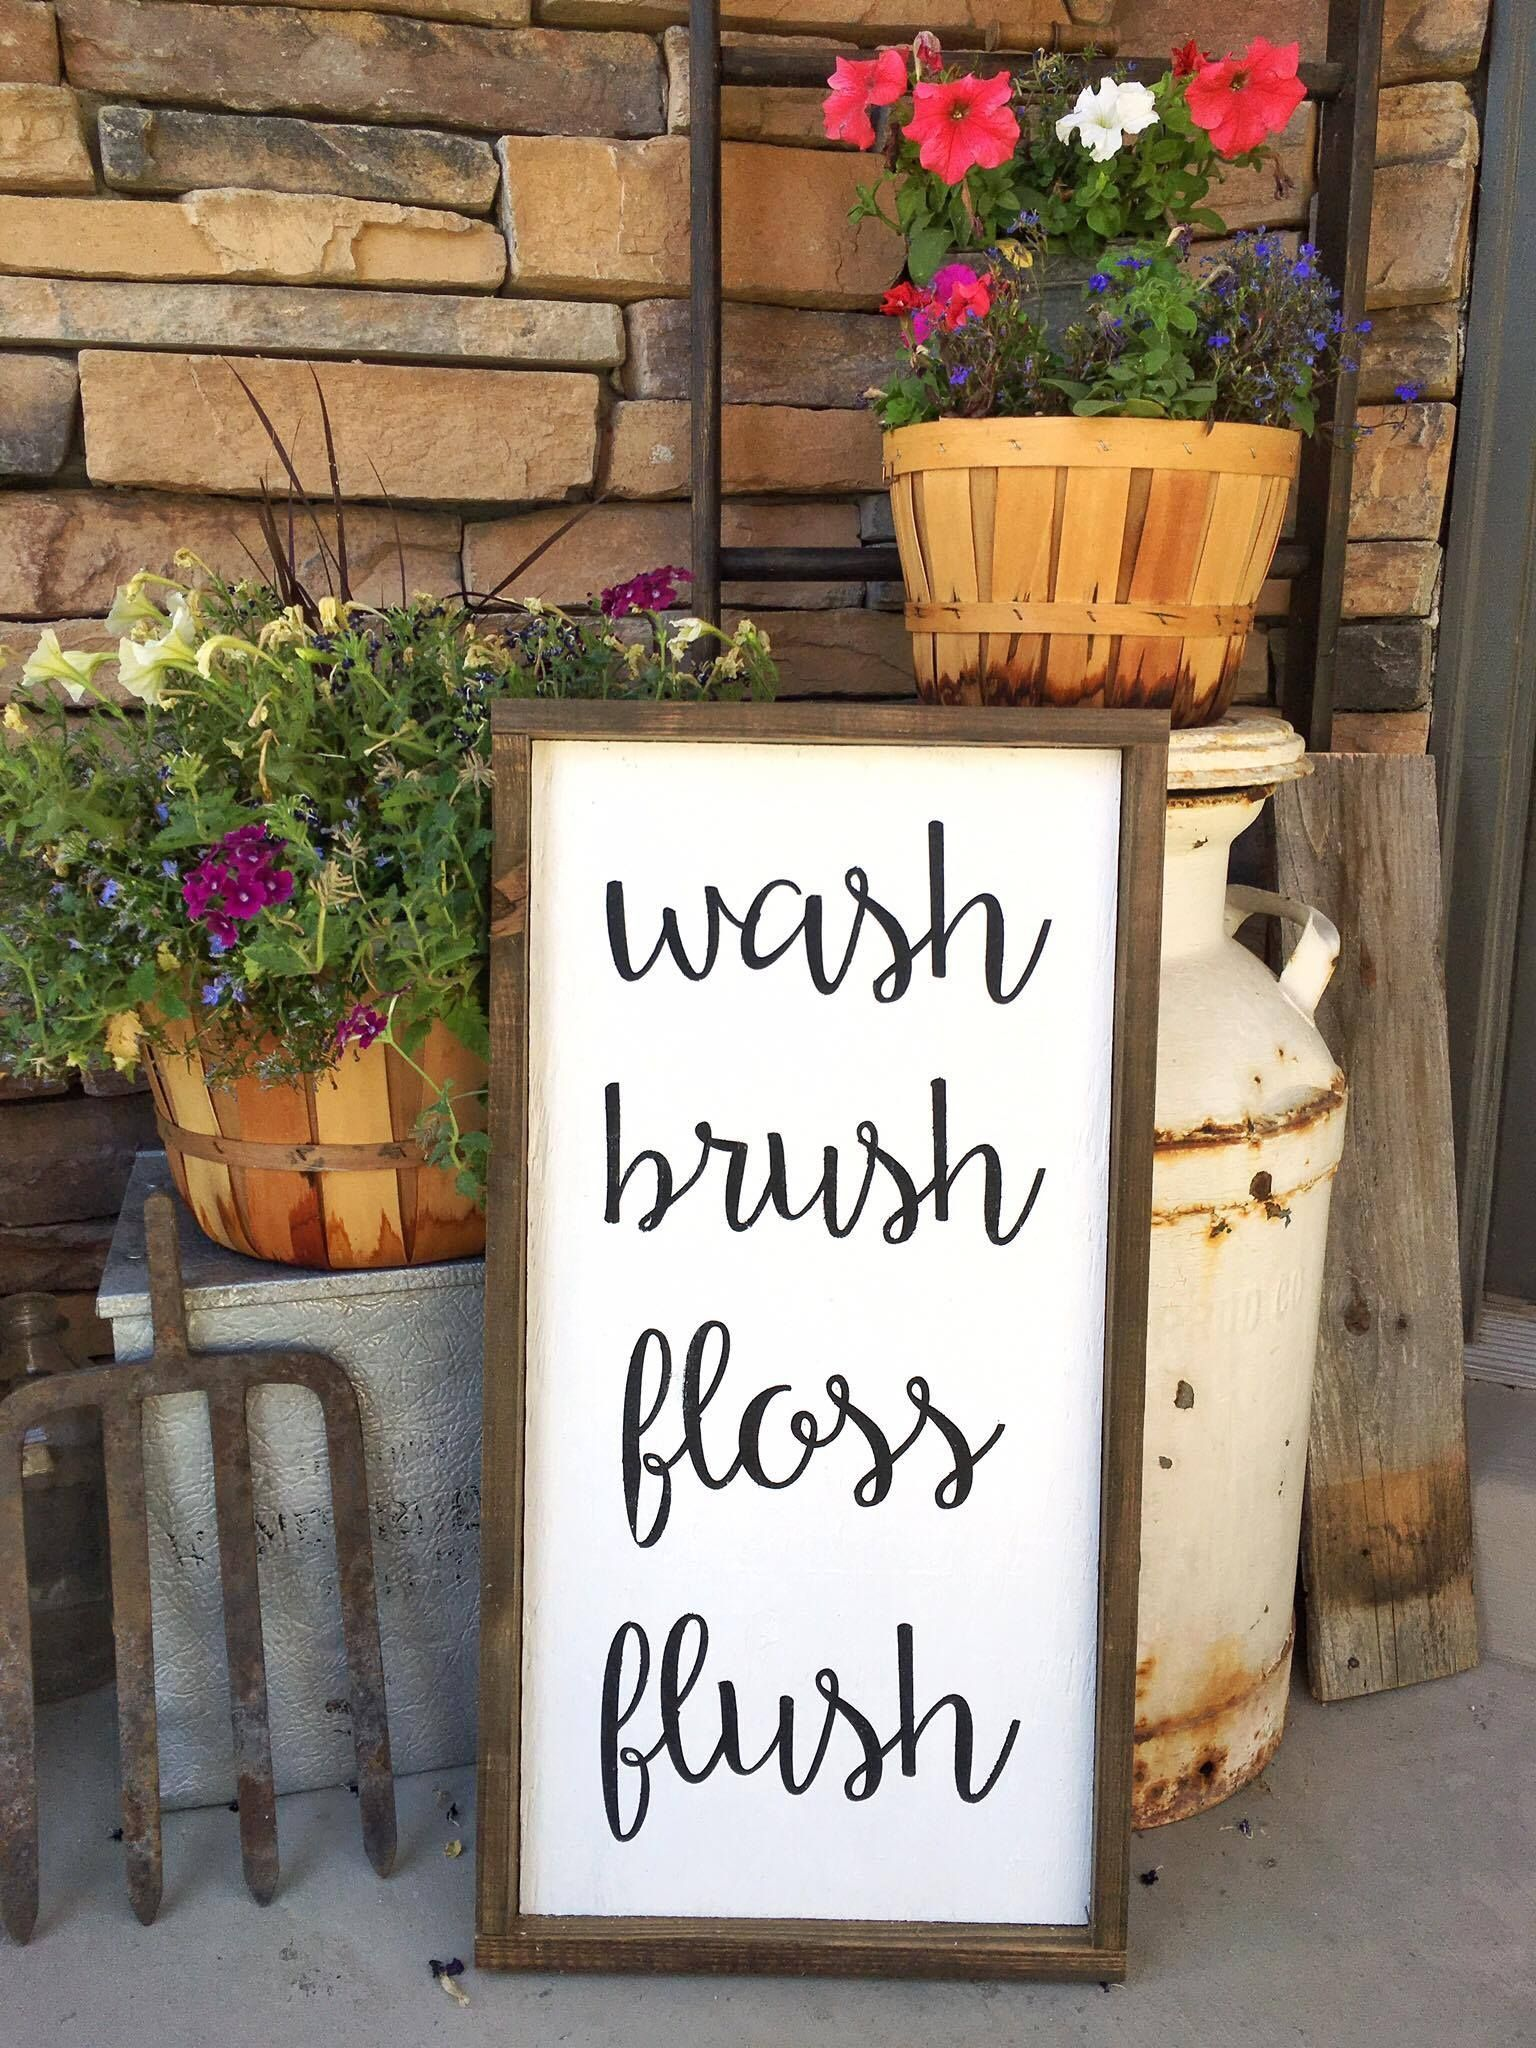 Robinet Salle De Bain Weldom ~ bathroom wash brush floss flush sign for the home pinterest